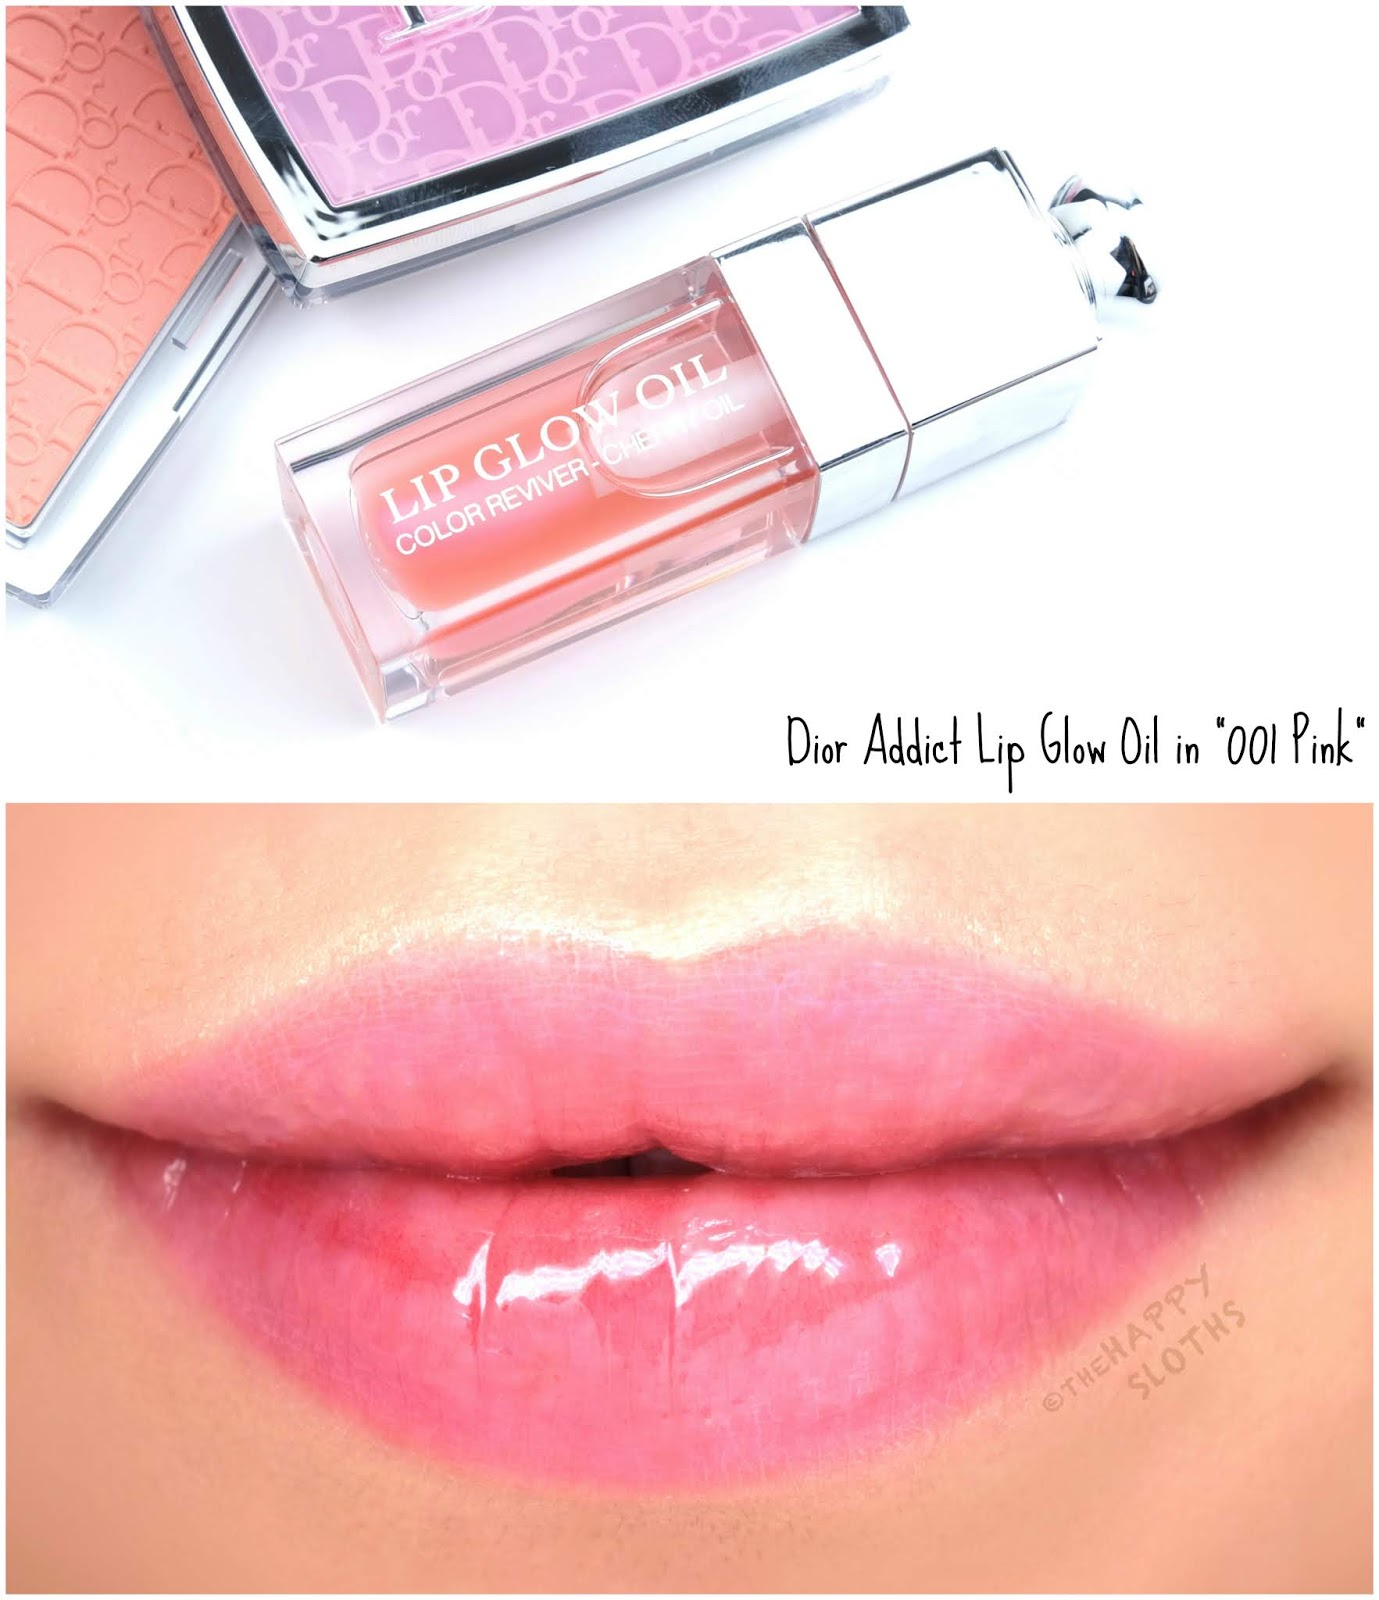 "Dior | Dior Addict Lip Glow Oil in ""001 Pink"": Review and Swatches"